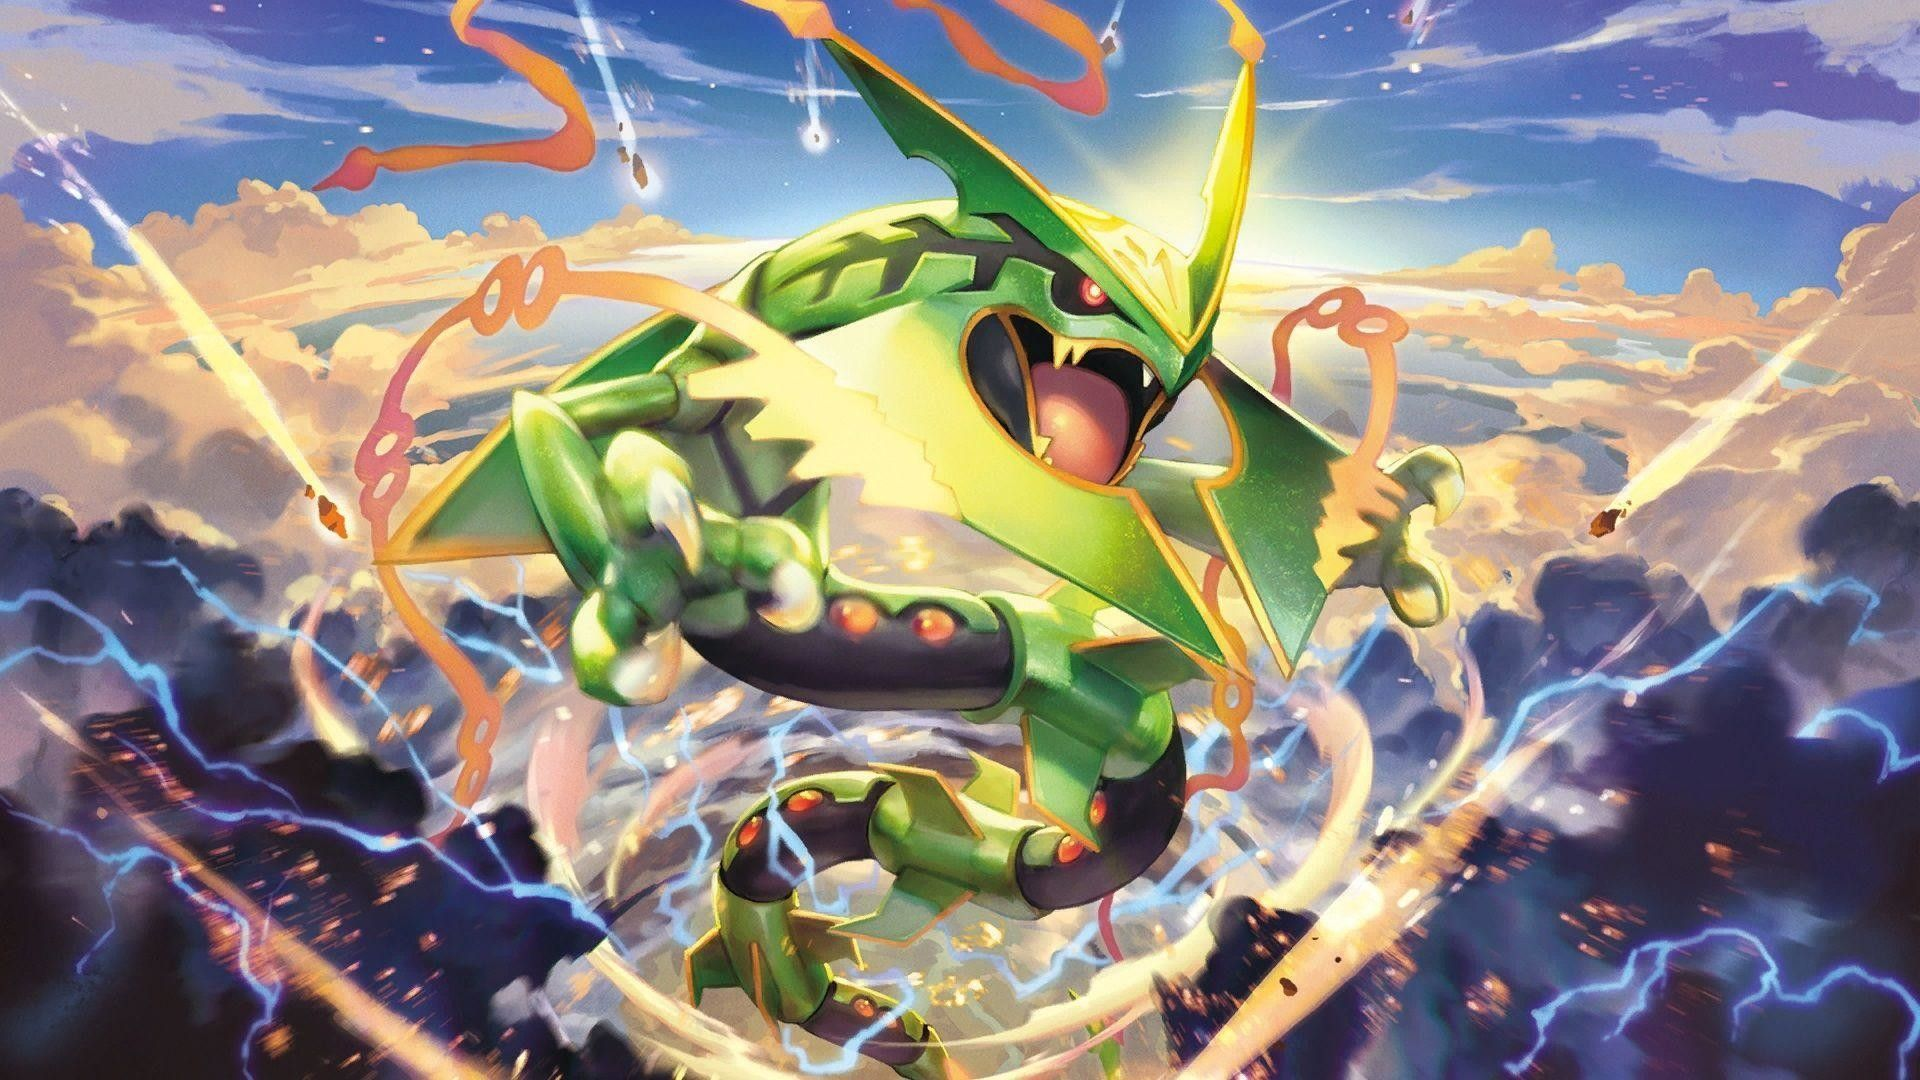 1920x1080 Pokemon Mega Rayquaza Wallpaper Pokemon Mega Rayquaza Wallpapers Pokemon Rayquaza Rayquaza Wallpaper Cool Pokemon Wallpapers